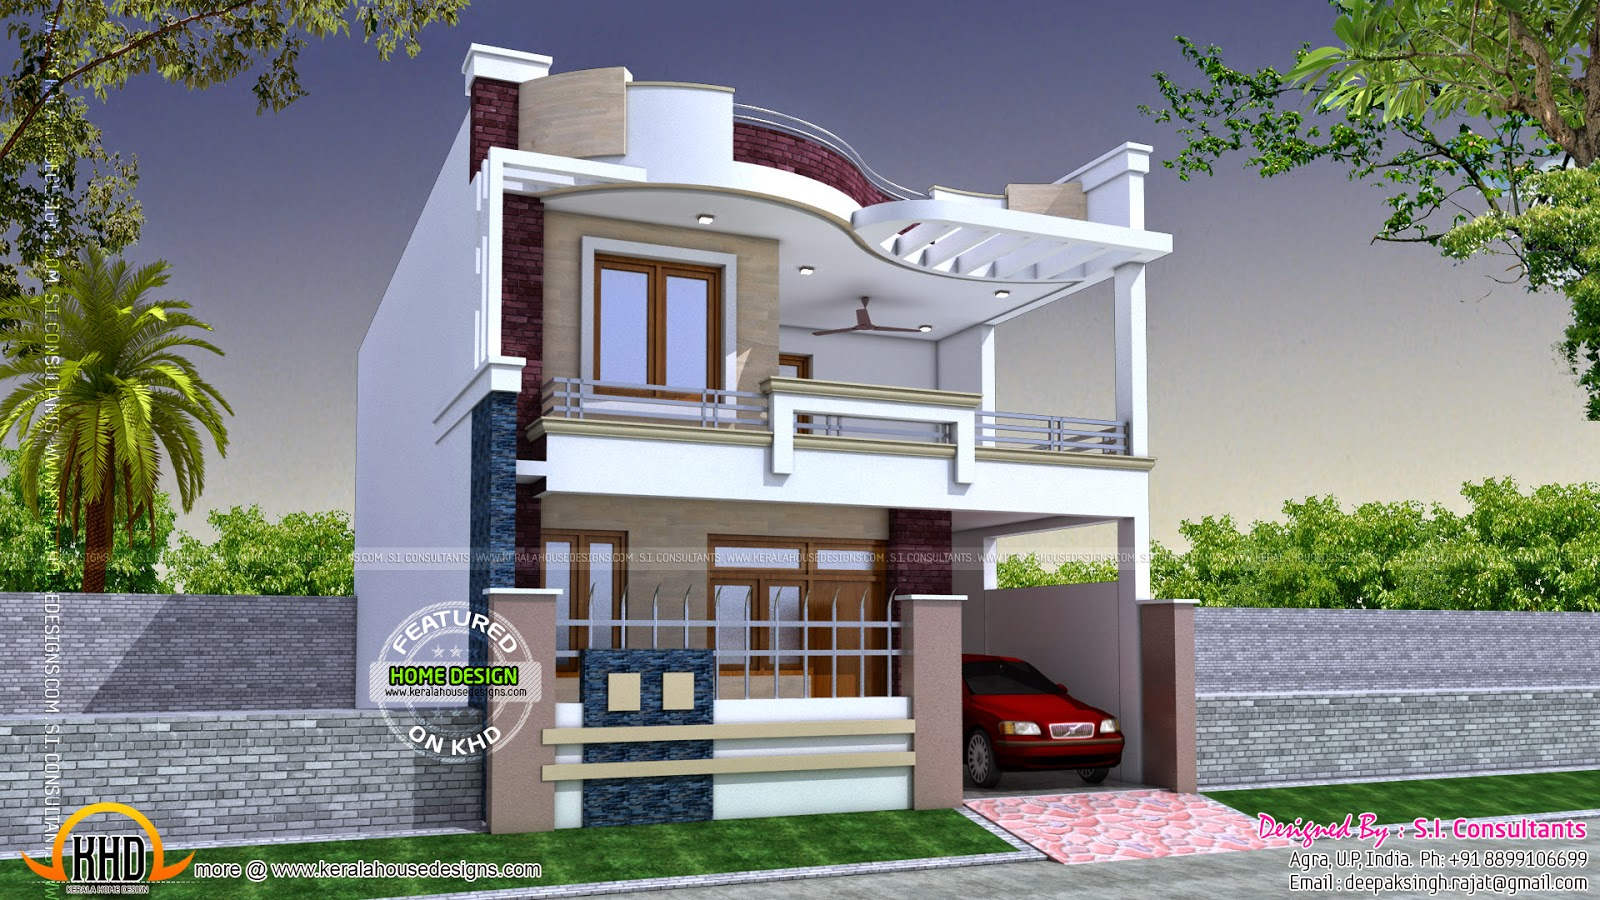 Modern indian home design kerala home design and floor plans for Home plans and designs with photos